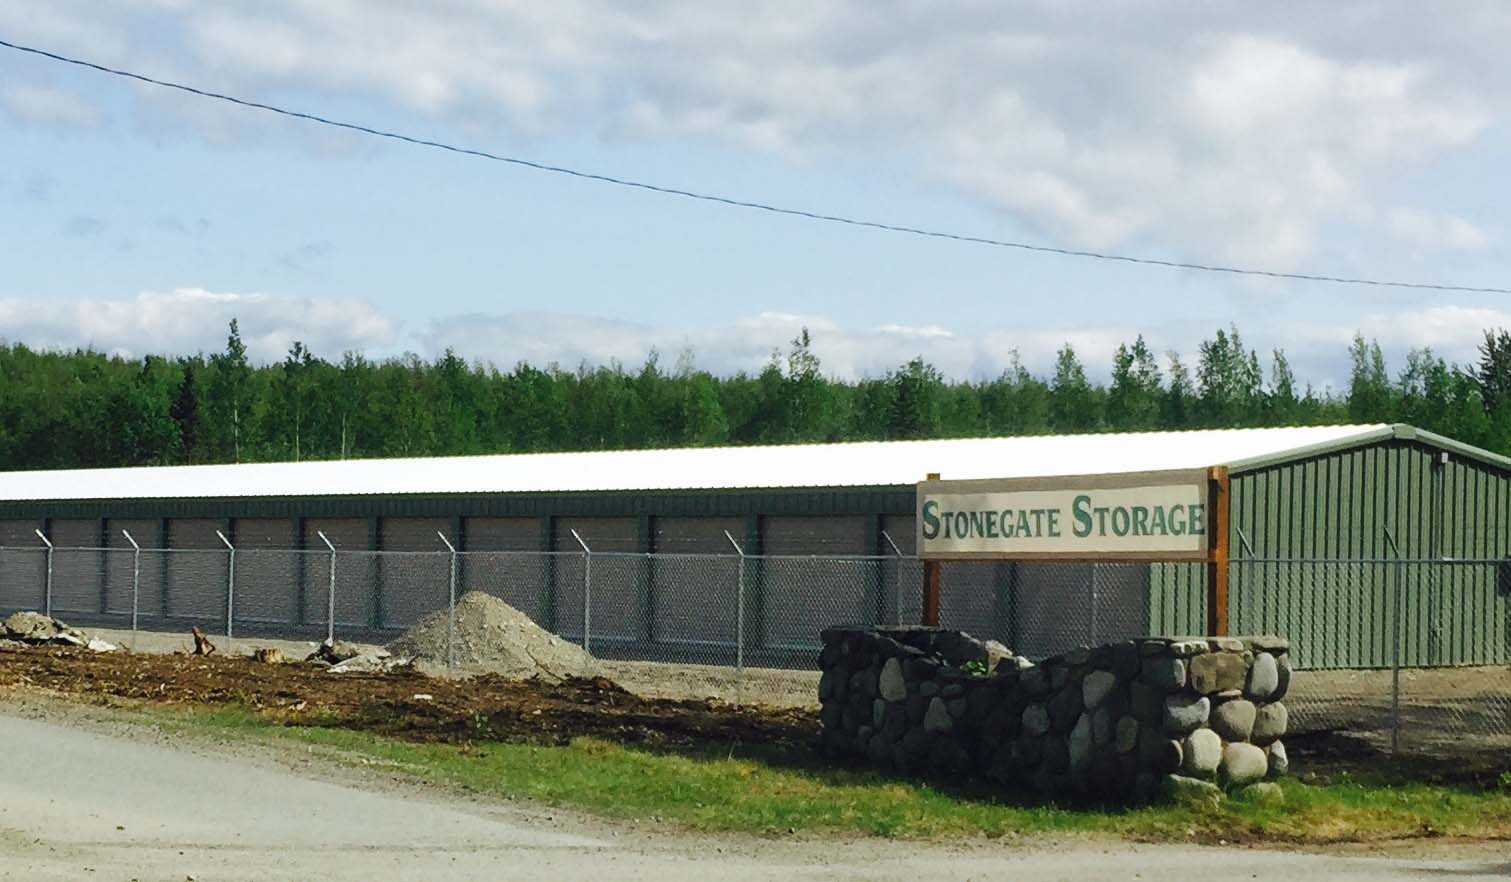 Stonegate Storage building